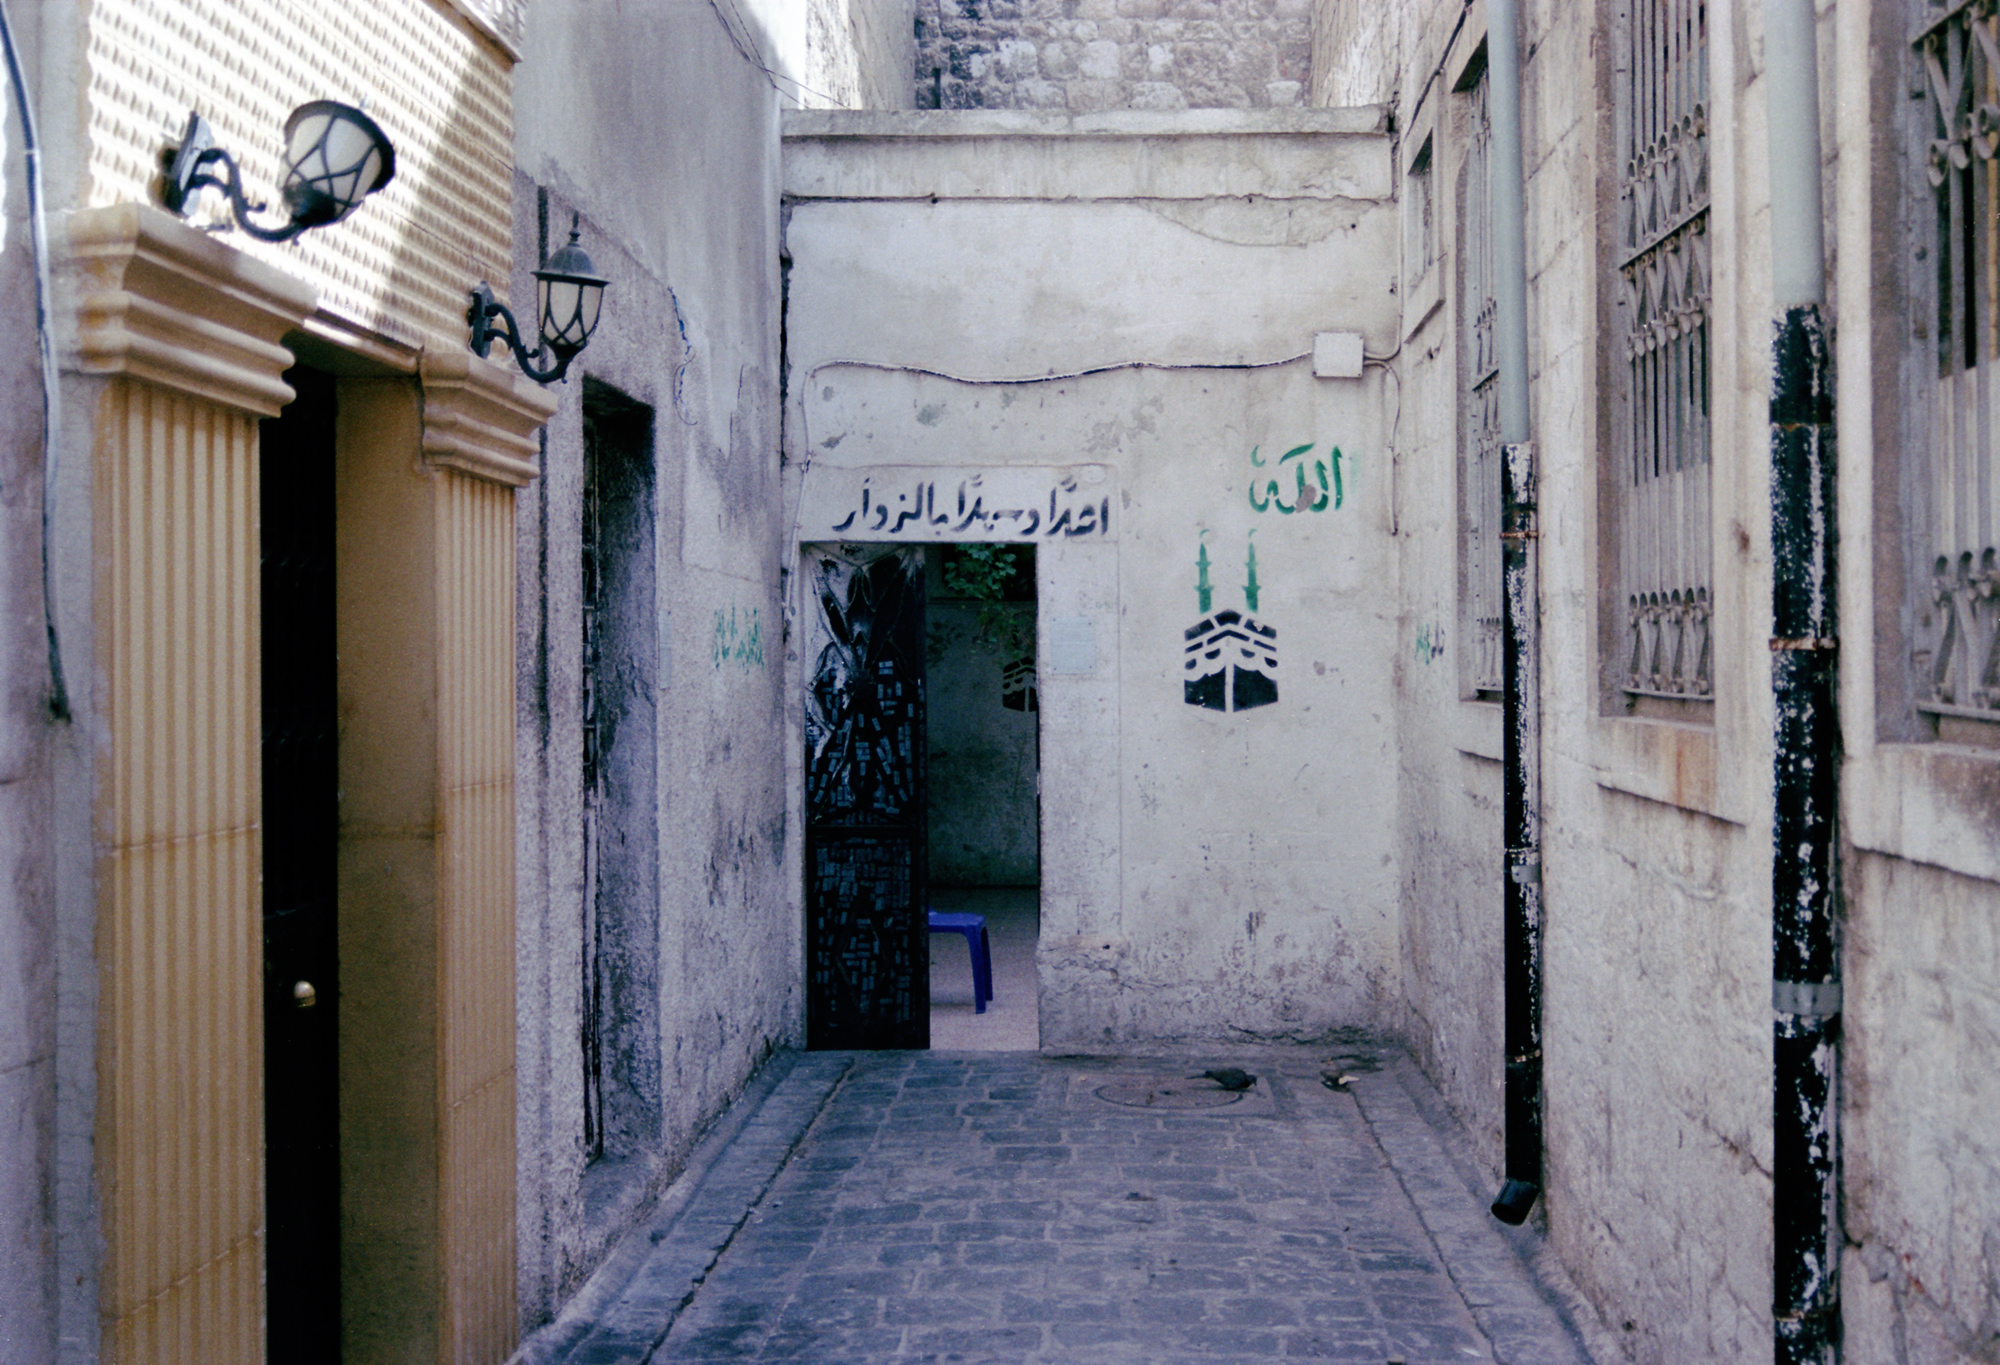 The entrance to a muslim house in the Medina